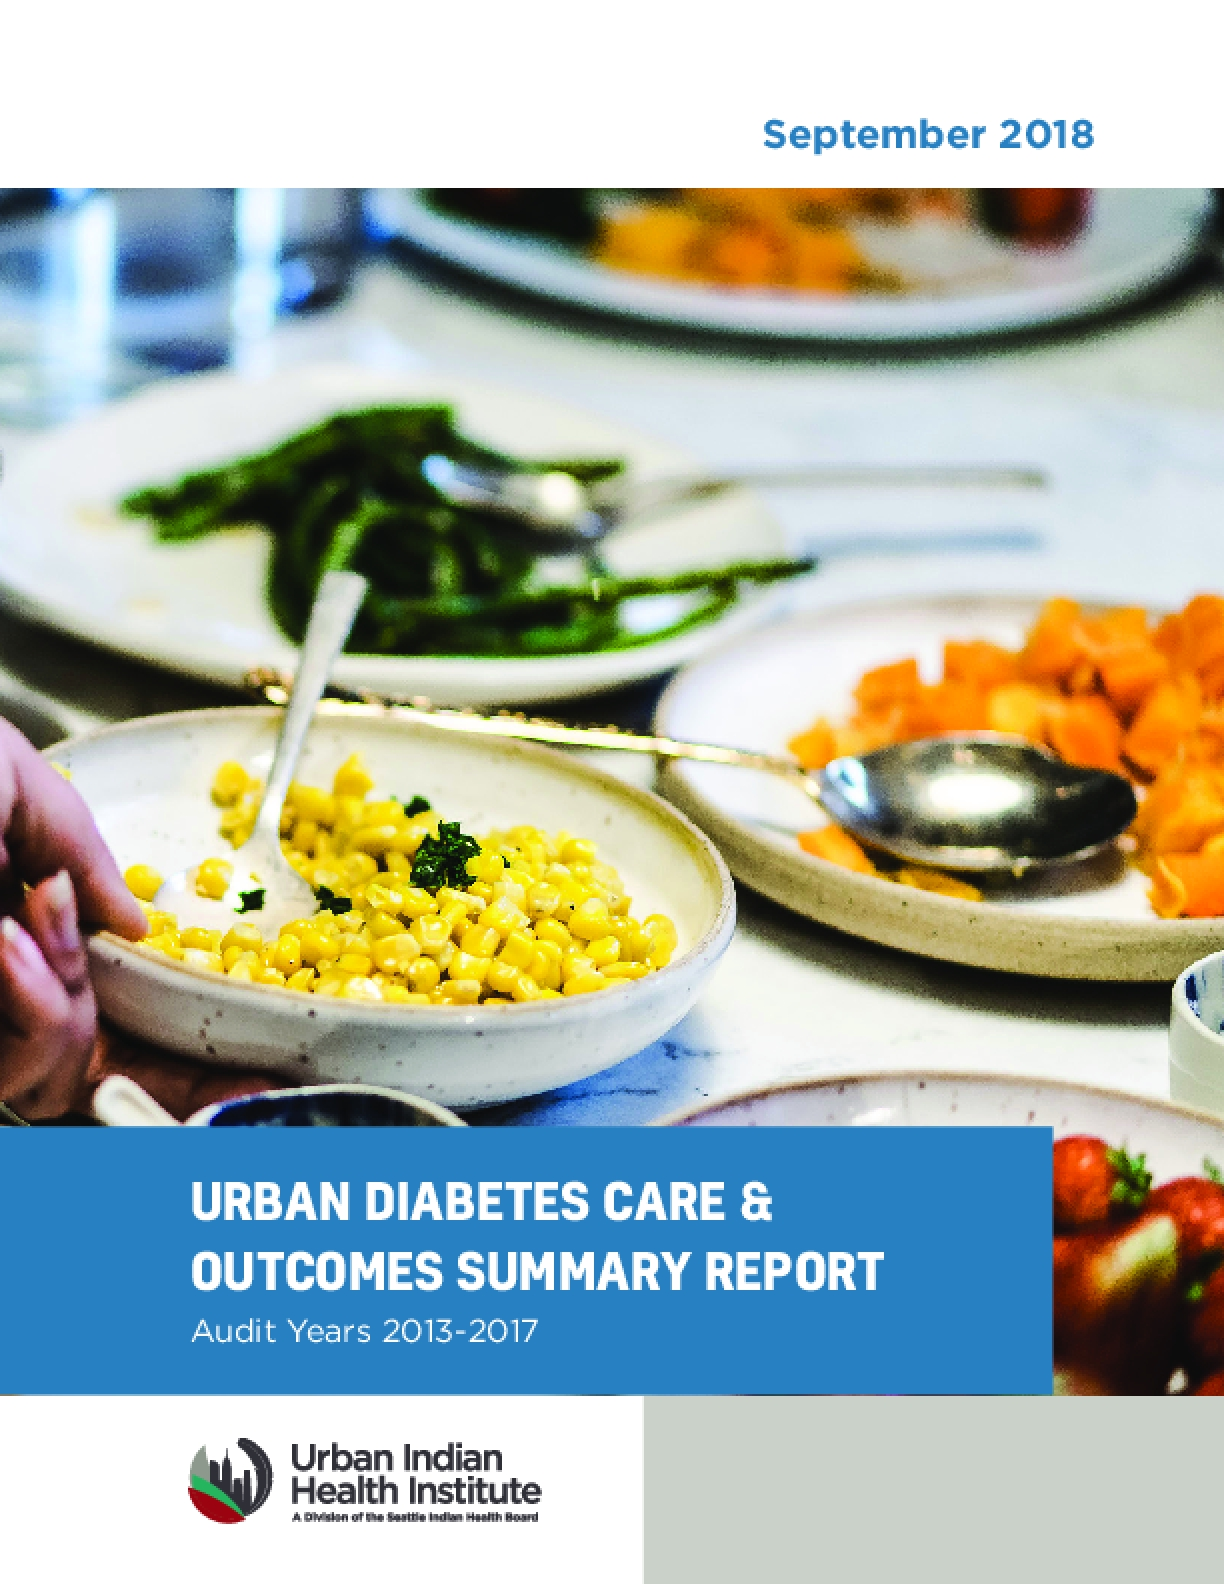 Urban Diabetes Care & Outcomes Summary Report, Audit Years 2013-2017